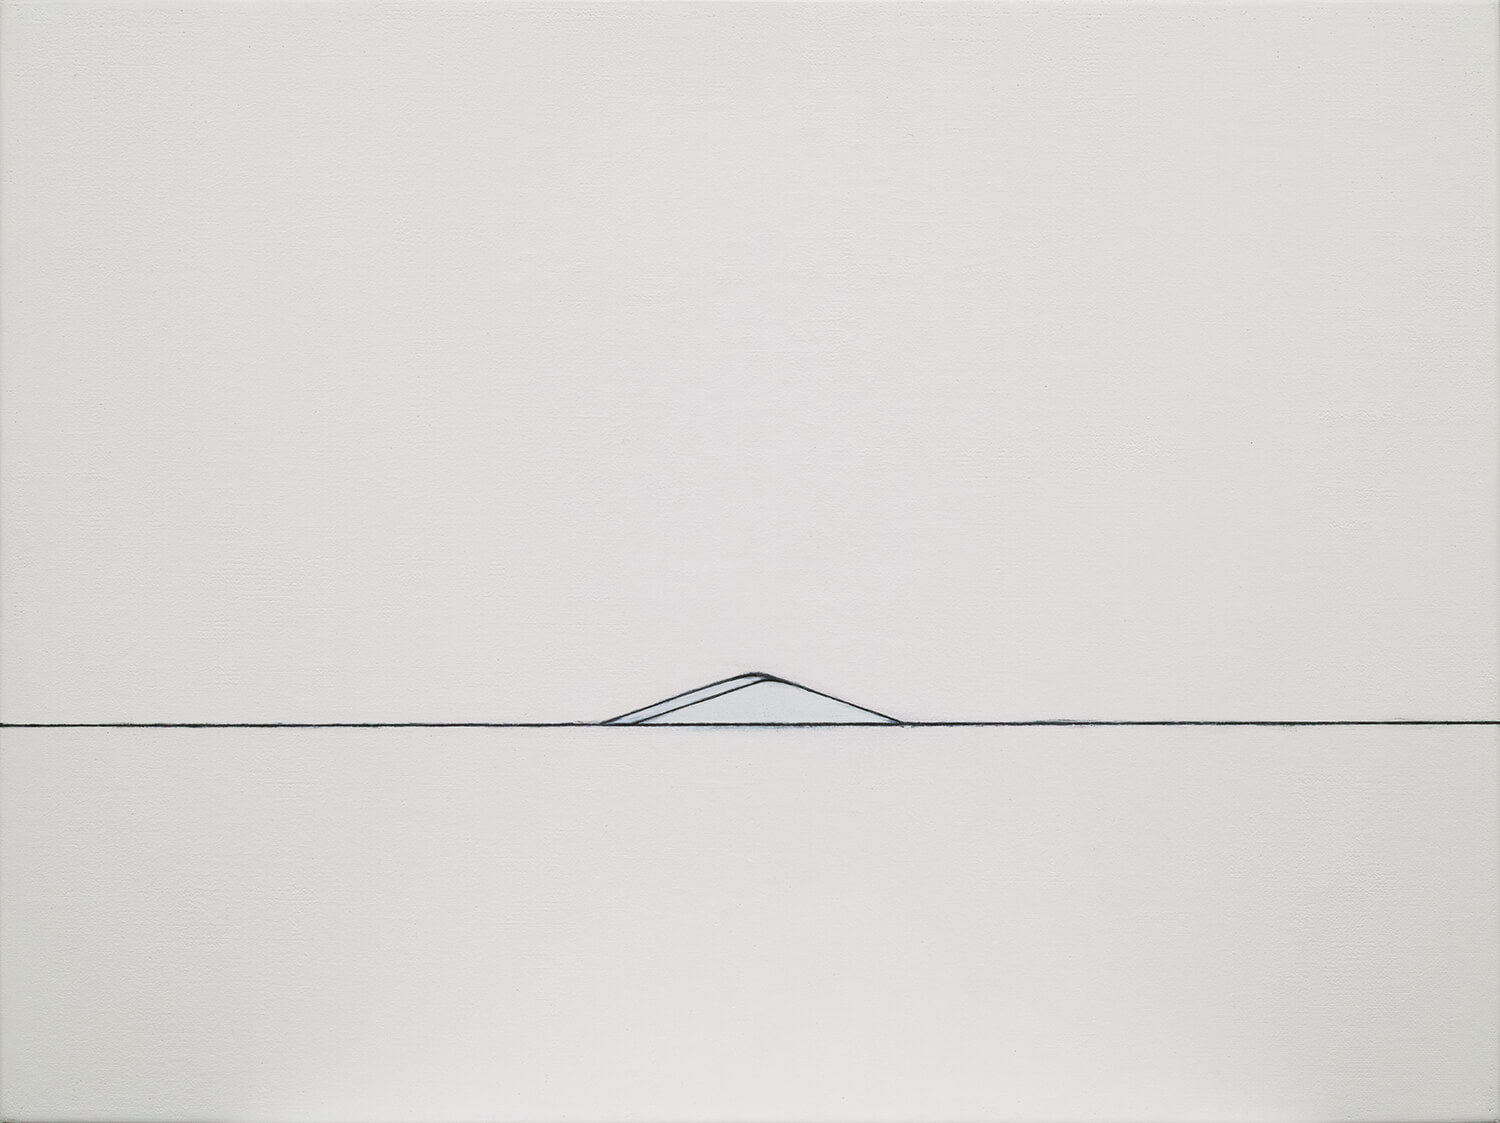 <strong>山脈2002-2005(03)</strong><br>oil on canvas, 48 x 64 cm, 2002